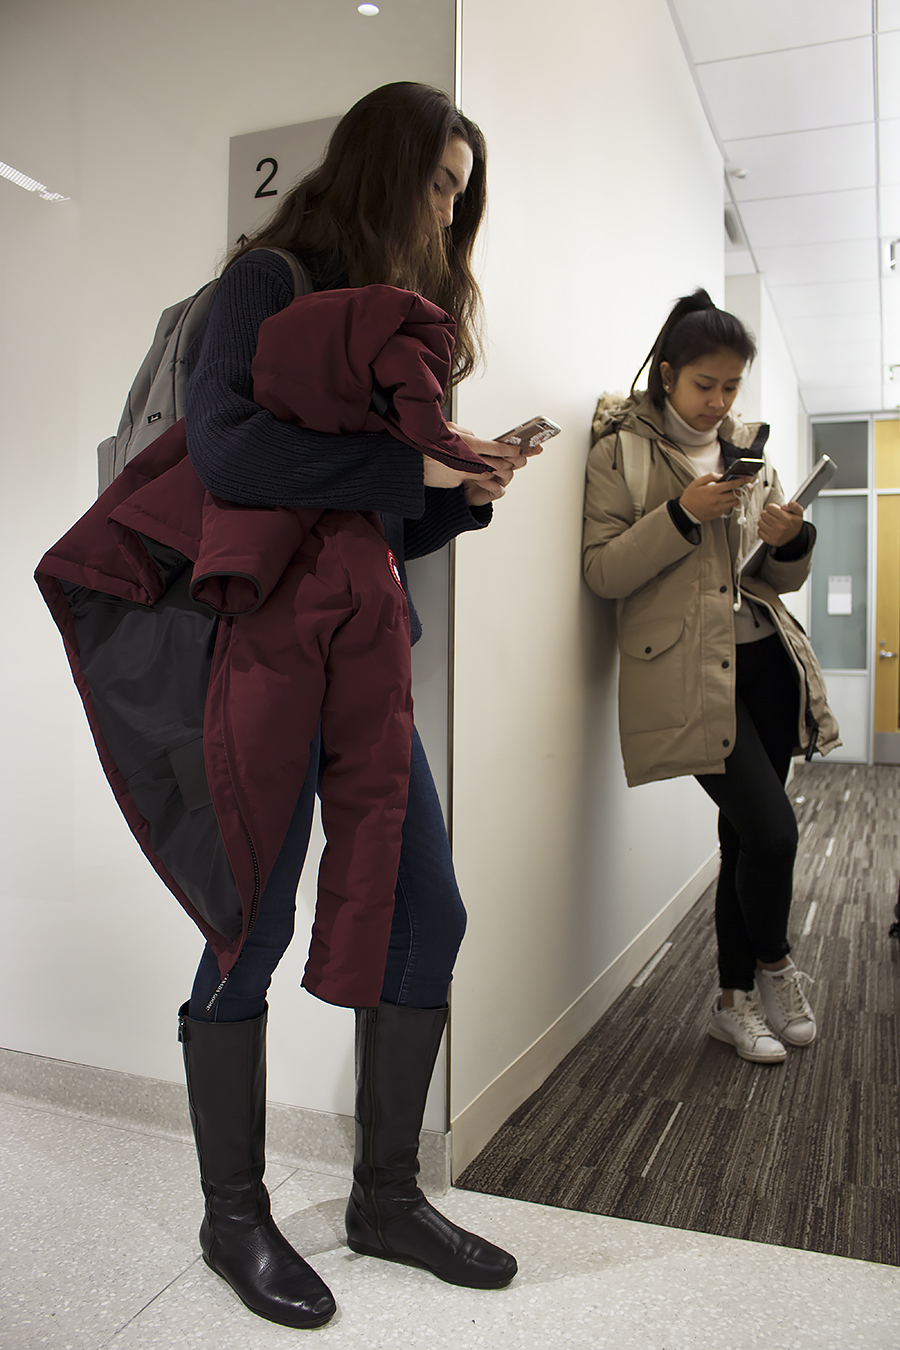 Tyler_Ling_photography_neurosciencebuilding_cellphones_absorbed_socialmedia_texting_anti-social_jackets_strangers_psychology_students_Penn_sideshot_unaware